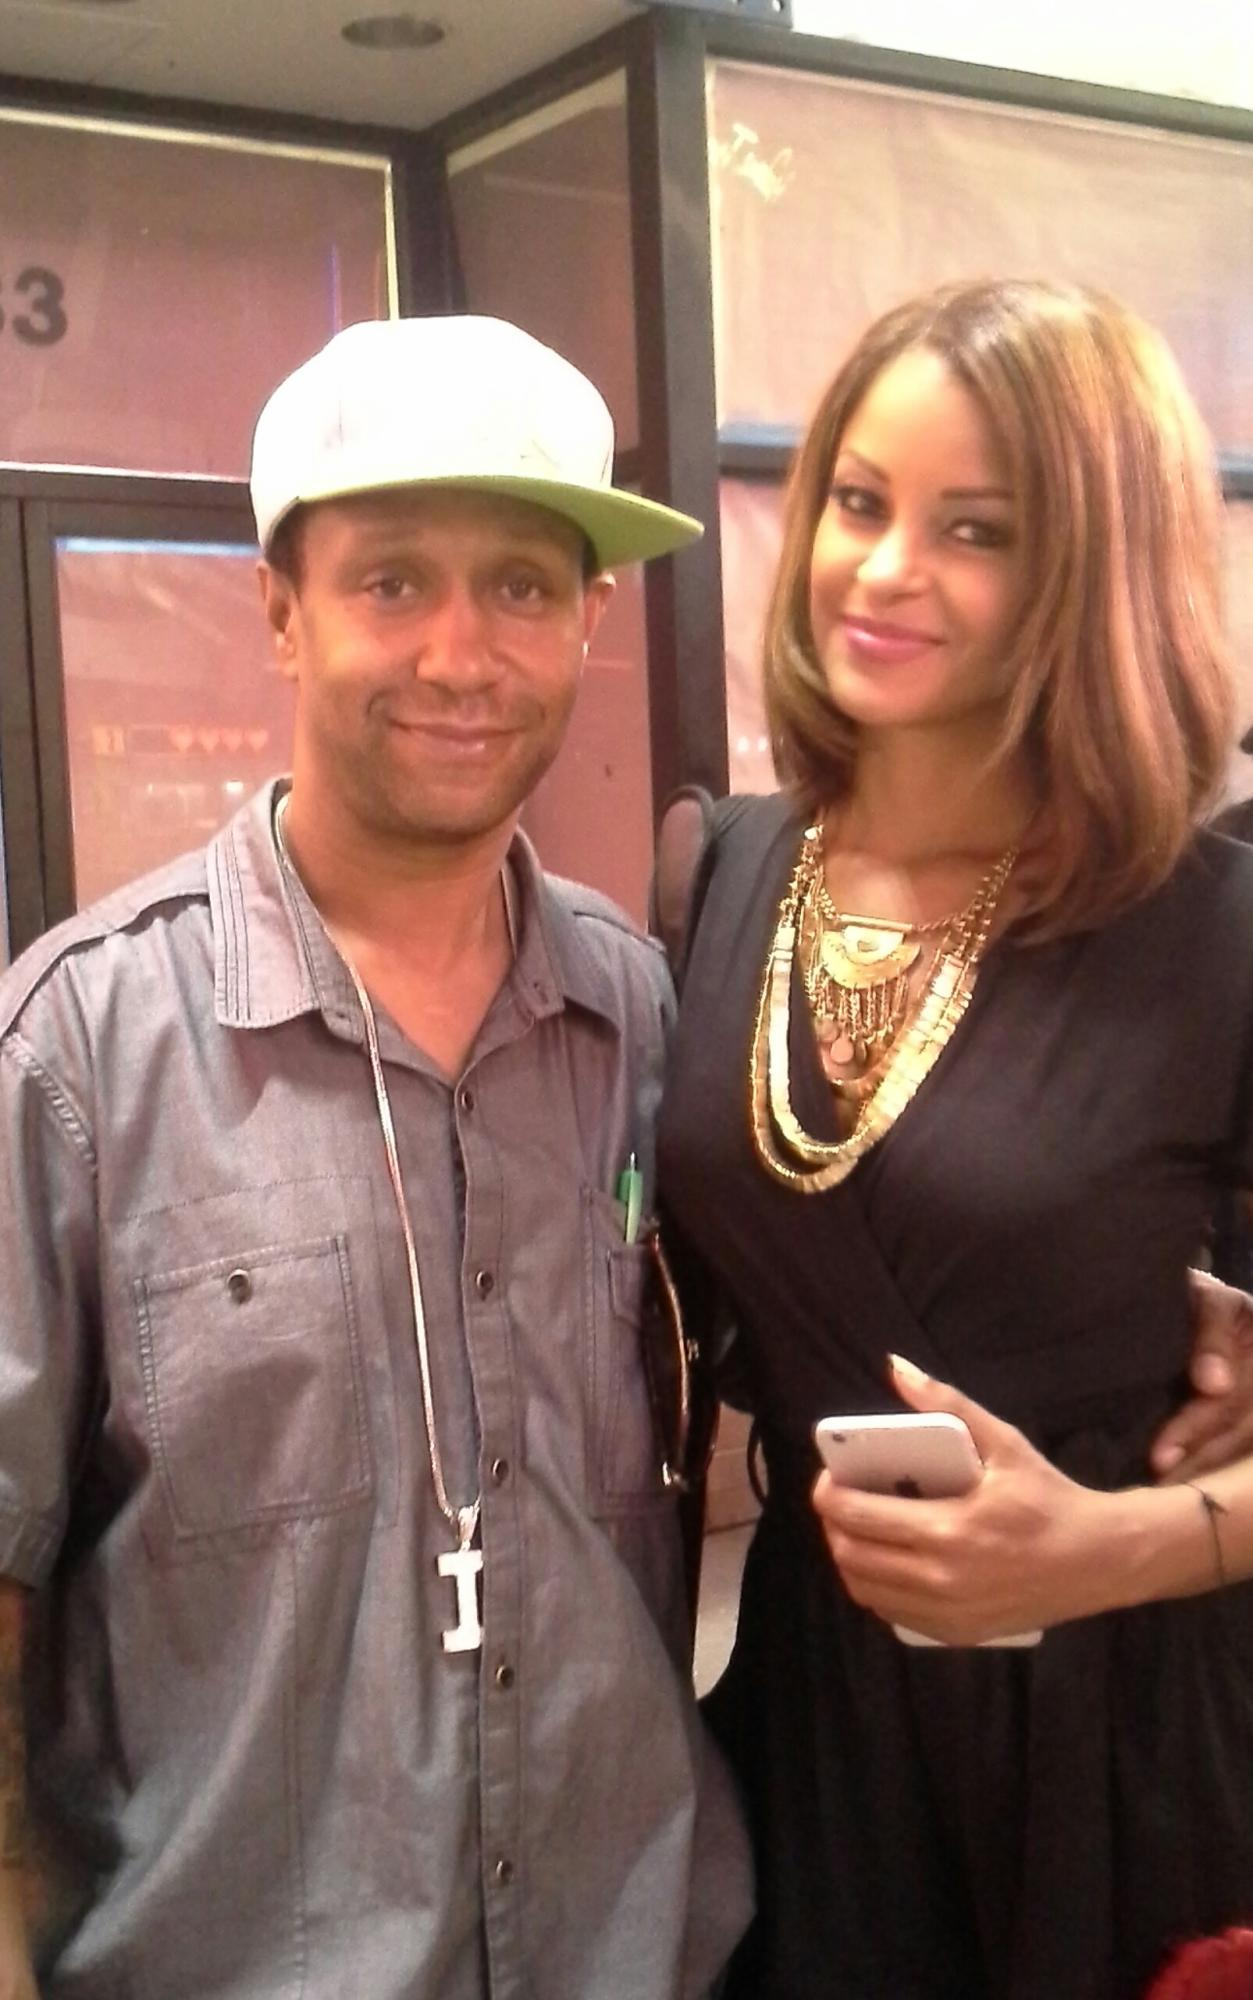 authorisadorejohnsonandclaudiajordan.jpg